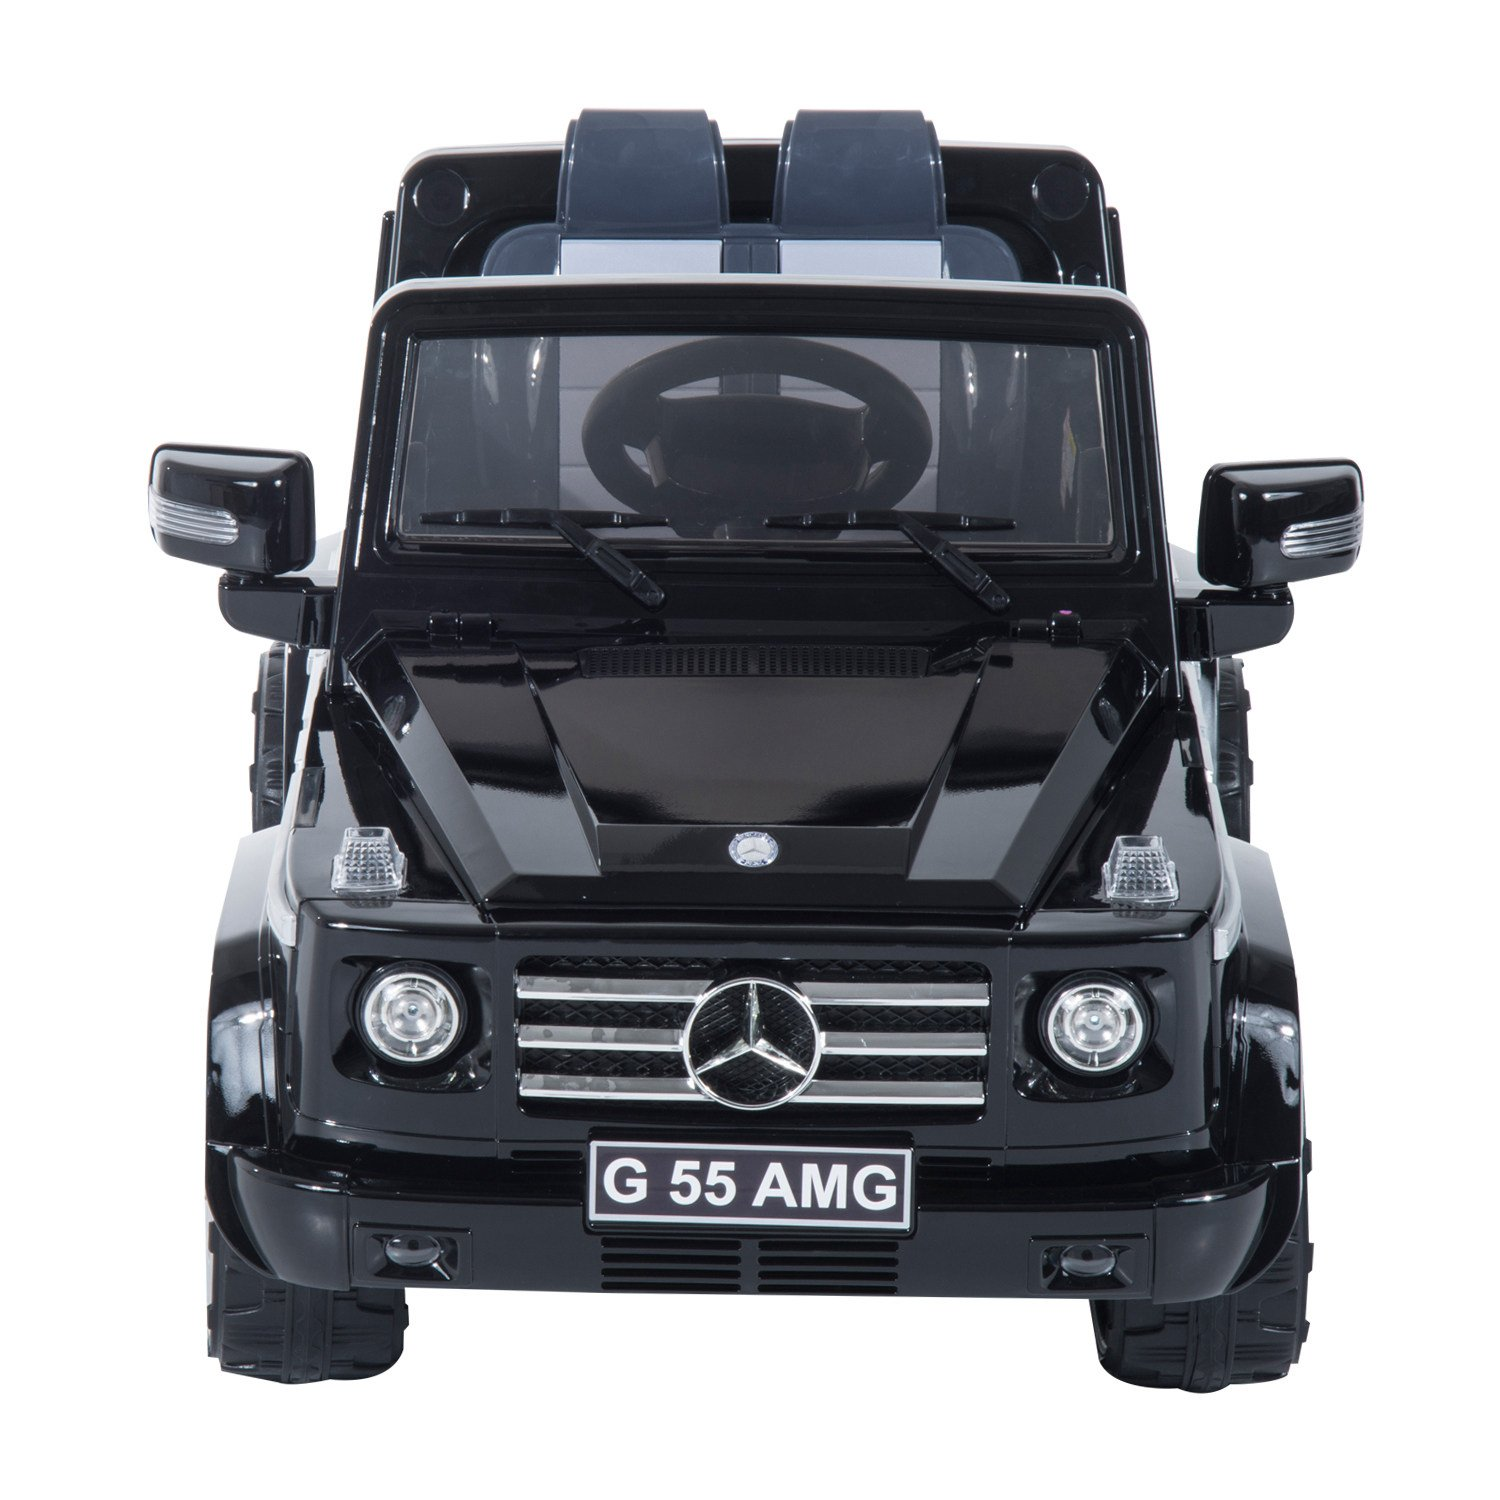 amazoncom mercedes benz g55 12v kids electric battery toy ride on suv car w remote control black toys games